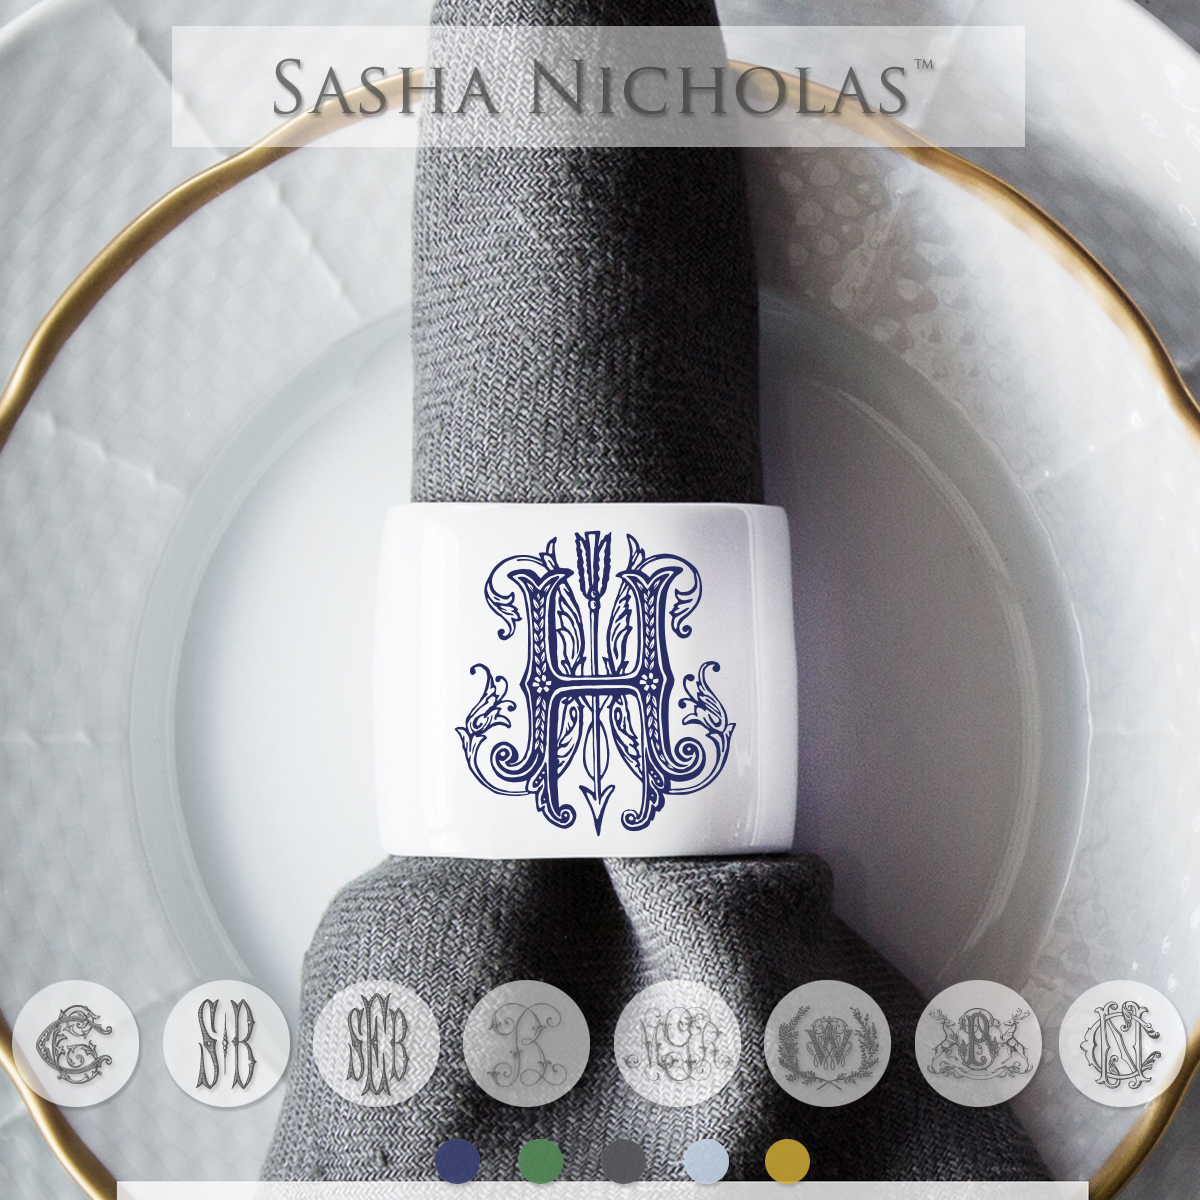 A beautiful addition to your dinnerware collection and to adorn your tablescapes with. It makes the perfect gift for your wedding or gift registry. Choose from their signature font styles or use a custom monogram or crest of your choice! | Sasha Nicholas's white porcelain oval napkin ring